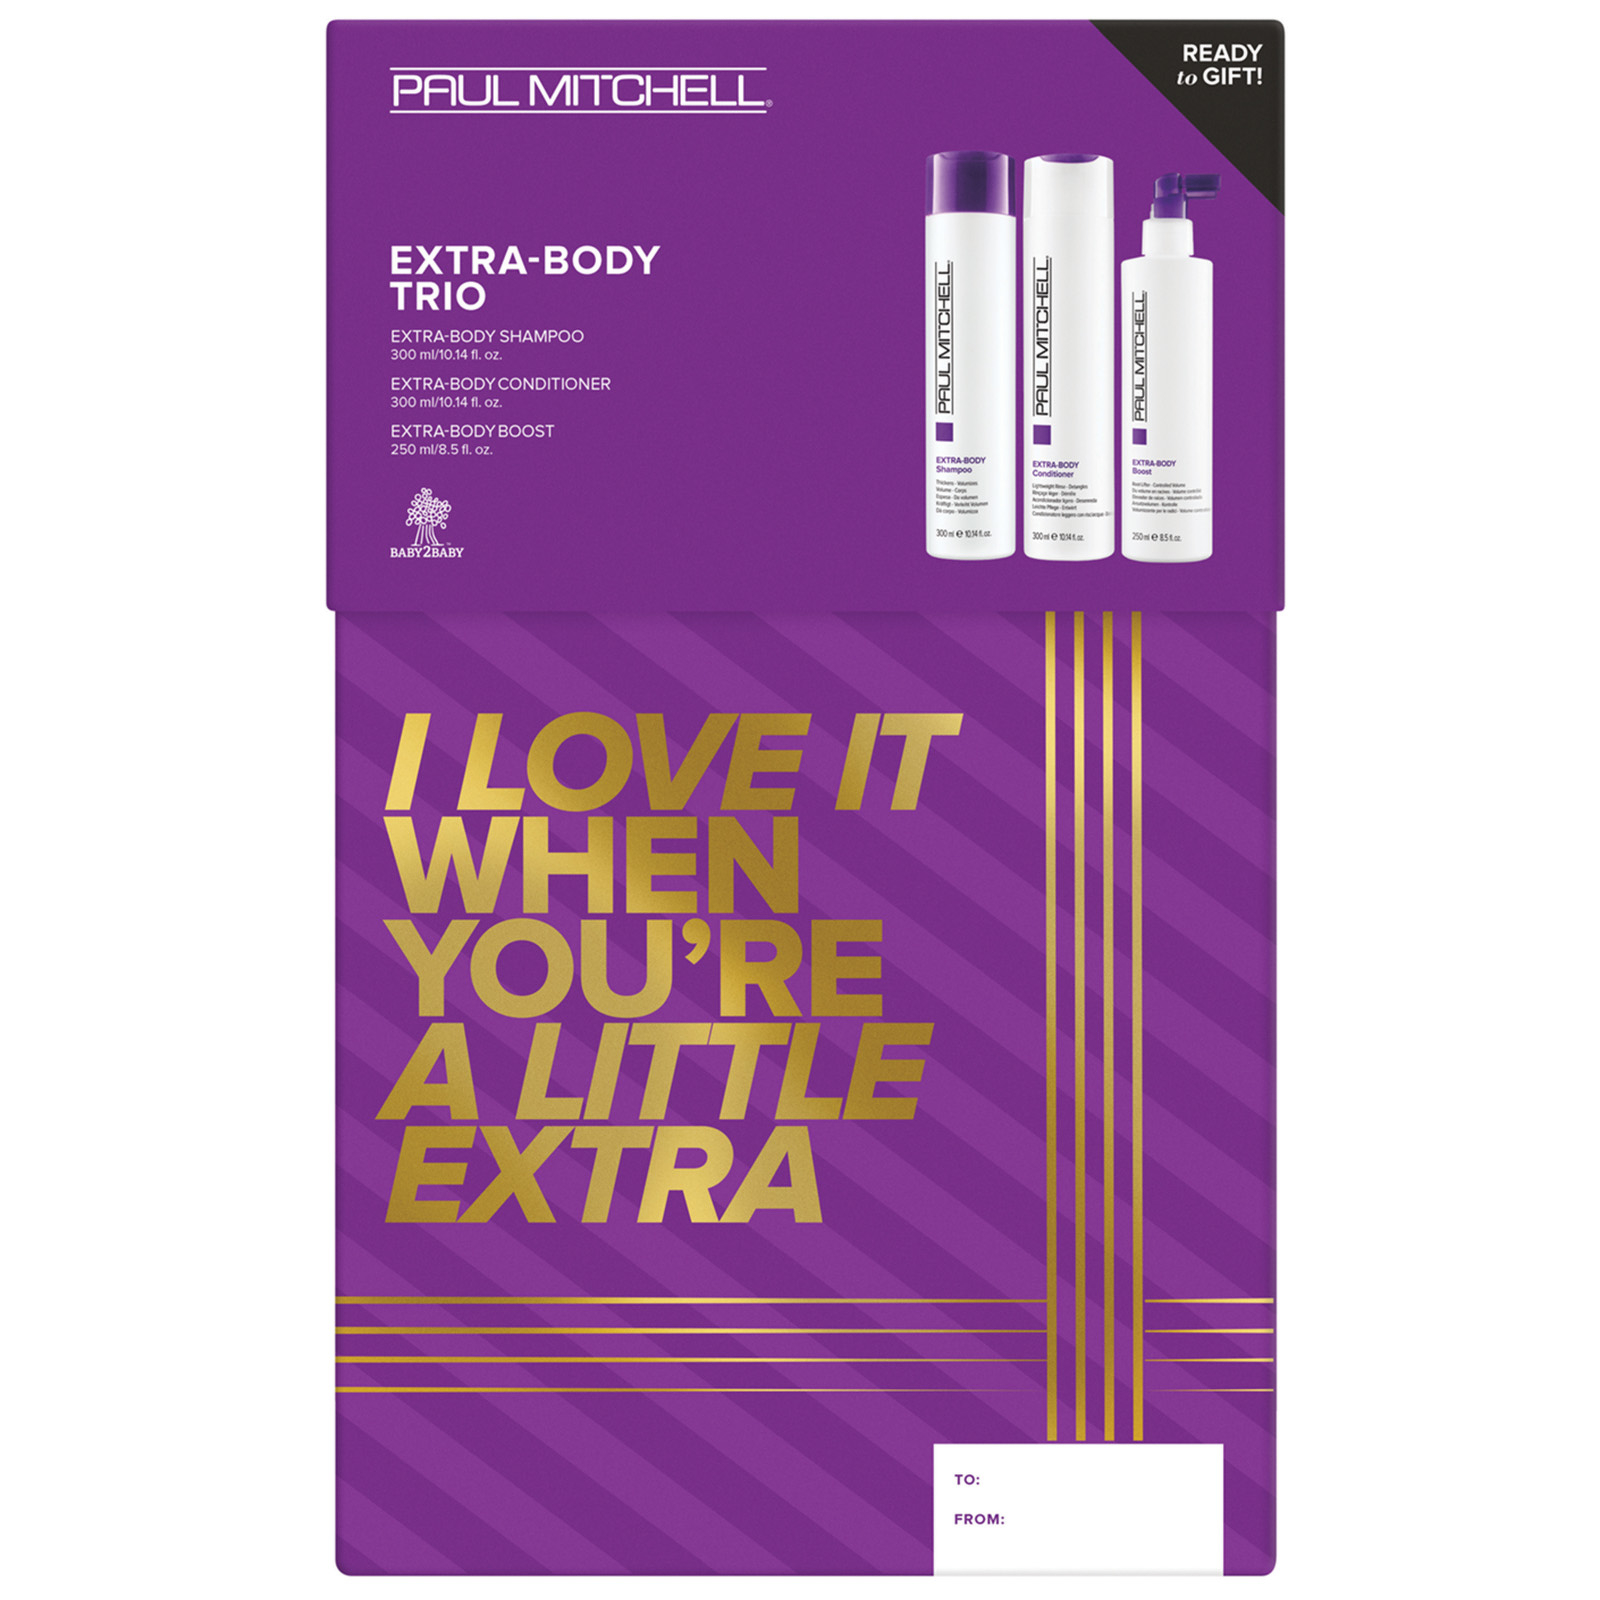 Paul Mitchell Gifts & Sets Extra-Body Trio: I Love it When You're A Little Extra